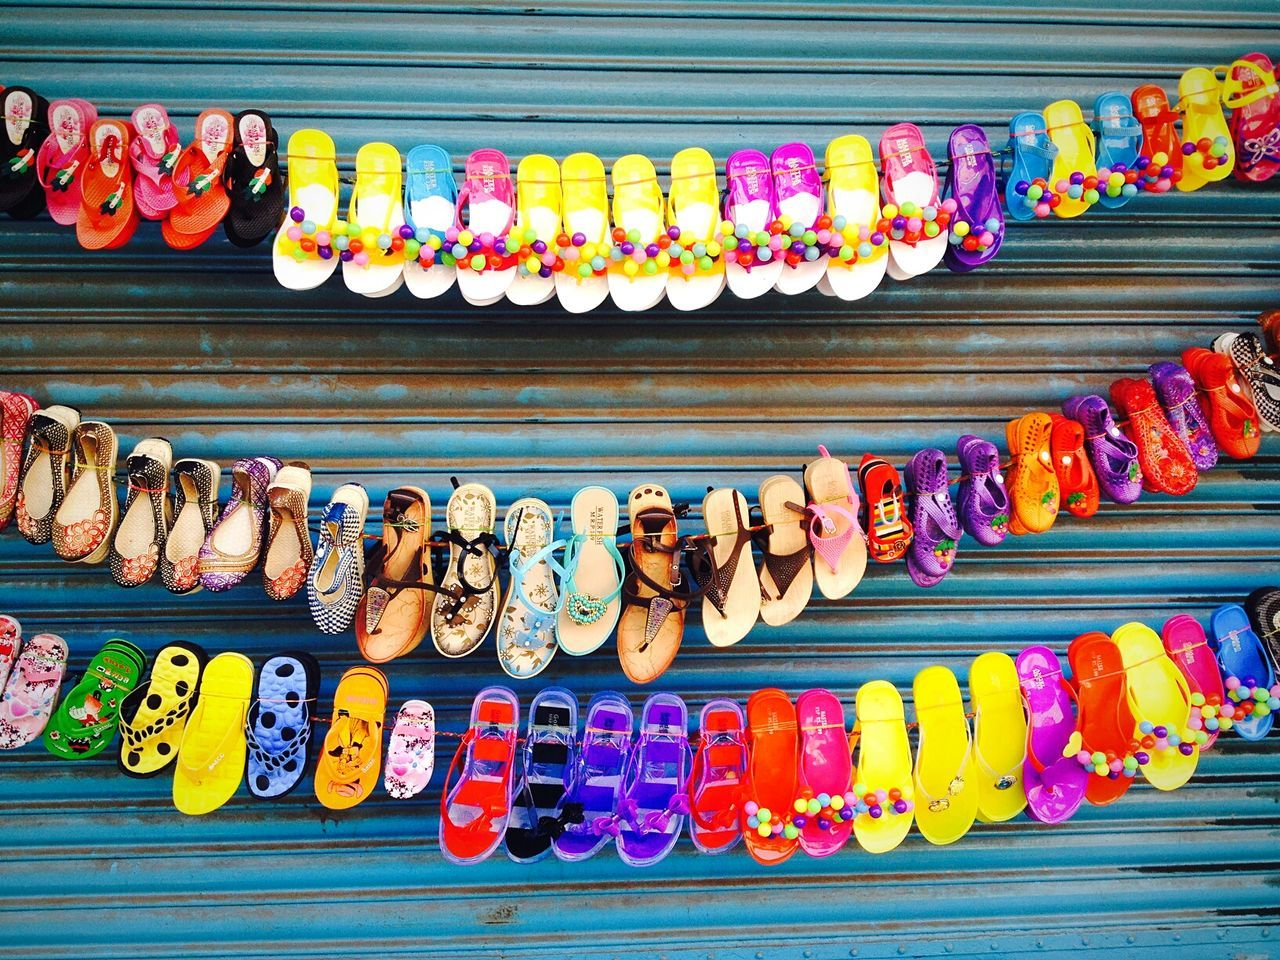 CLOSE-UP OF MULTI COLORED OBJECTS FOR SALE IN MARKET STALL